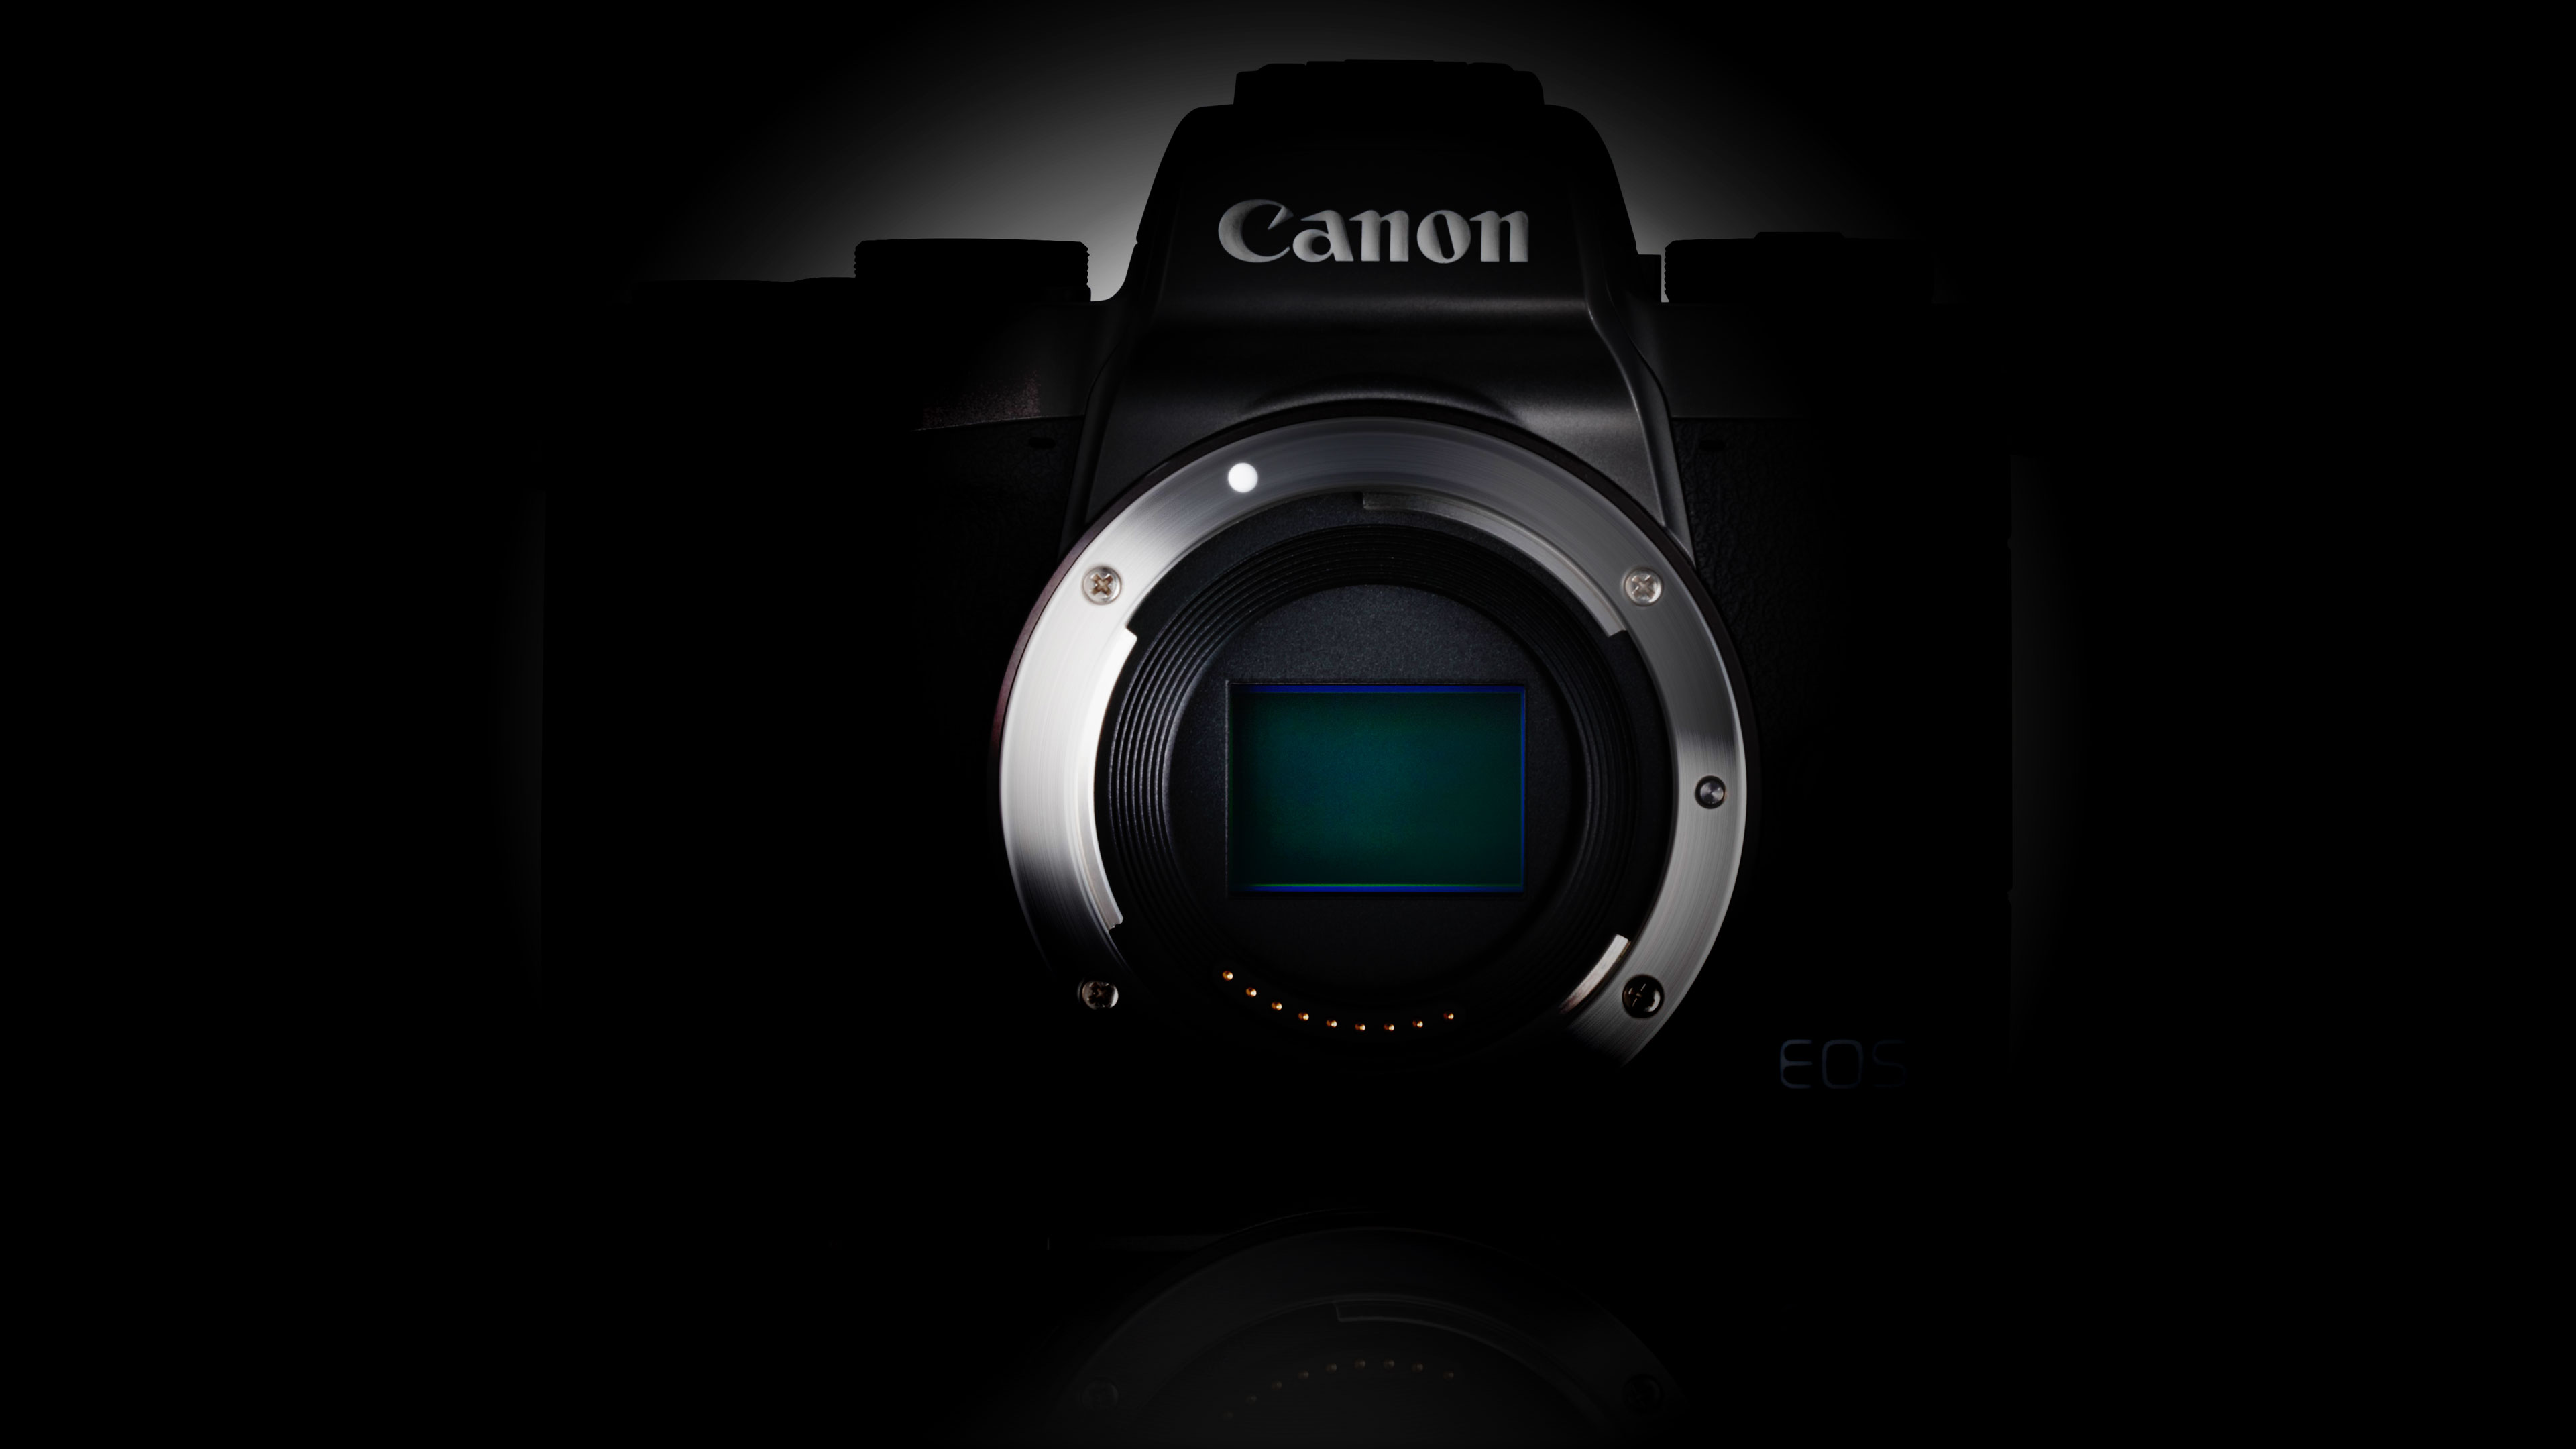 Rumors emerge of a new Canon APS-C mirrorless model as soon as August 2019 | Digital Camera World